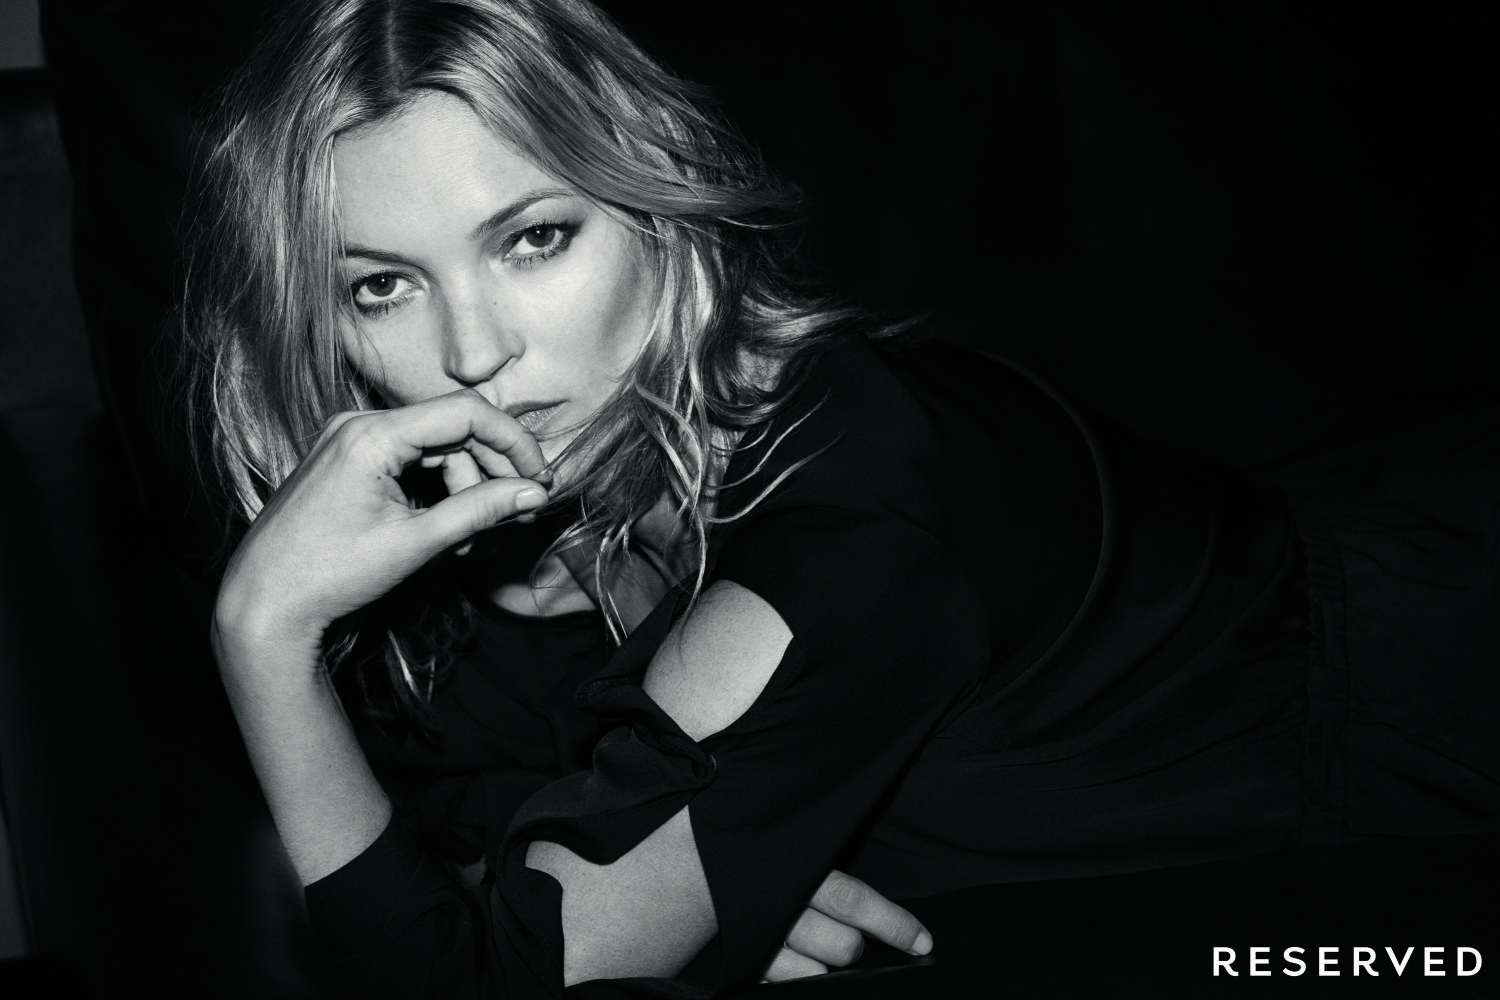 Michelle Humphrey for RESERVED x KATE MOSS